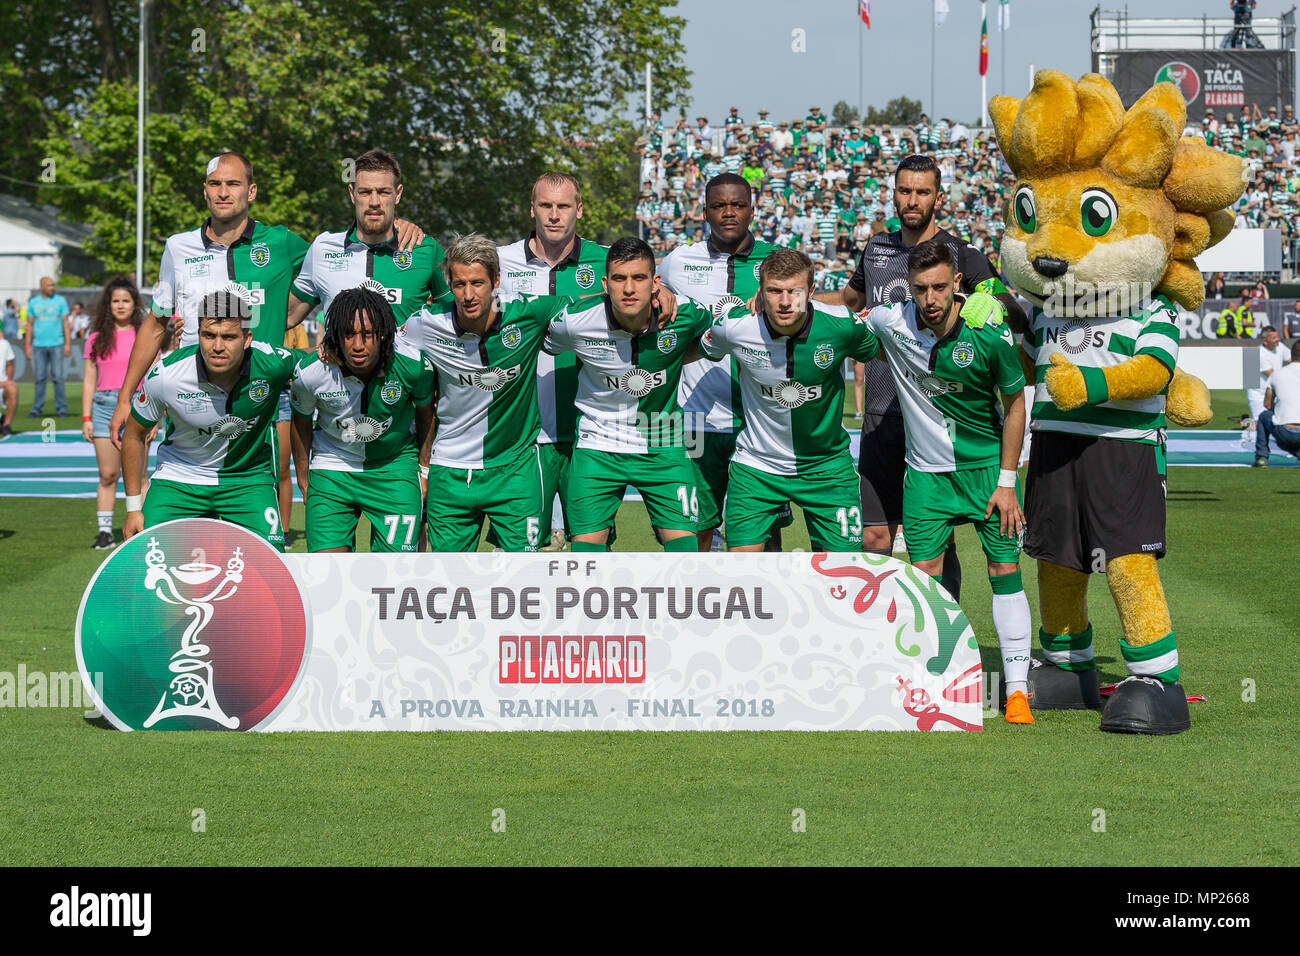 May 20, 2018. Lisbon, Portugal. Sporting starting eleven for  the game of the Portuguese Cup Final, between Desportivo das Aves vs Sporting CP © Alexandre de Sousa/Alamy Live News - Stock Image